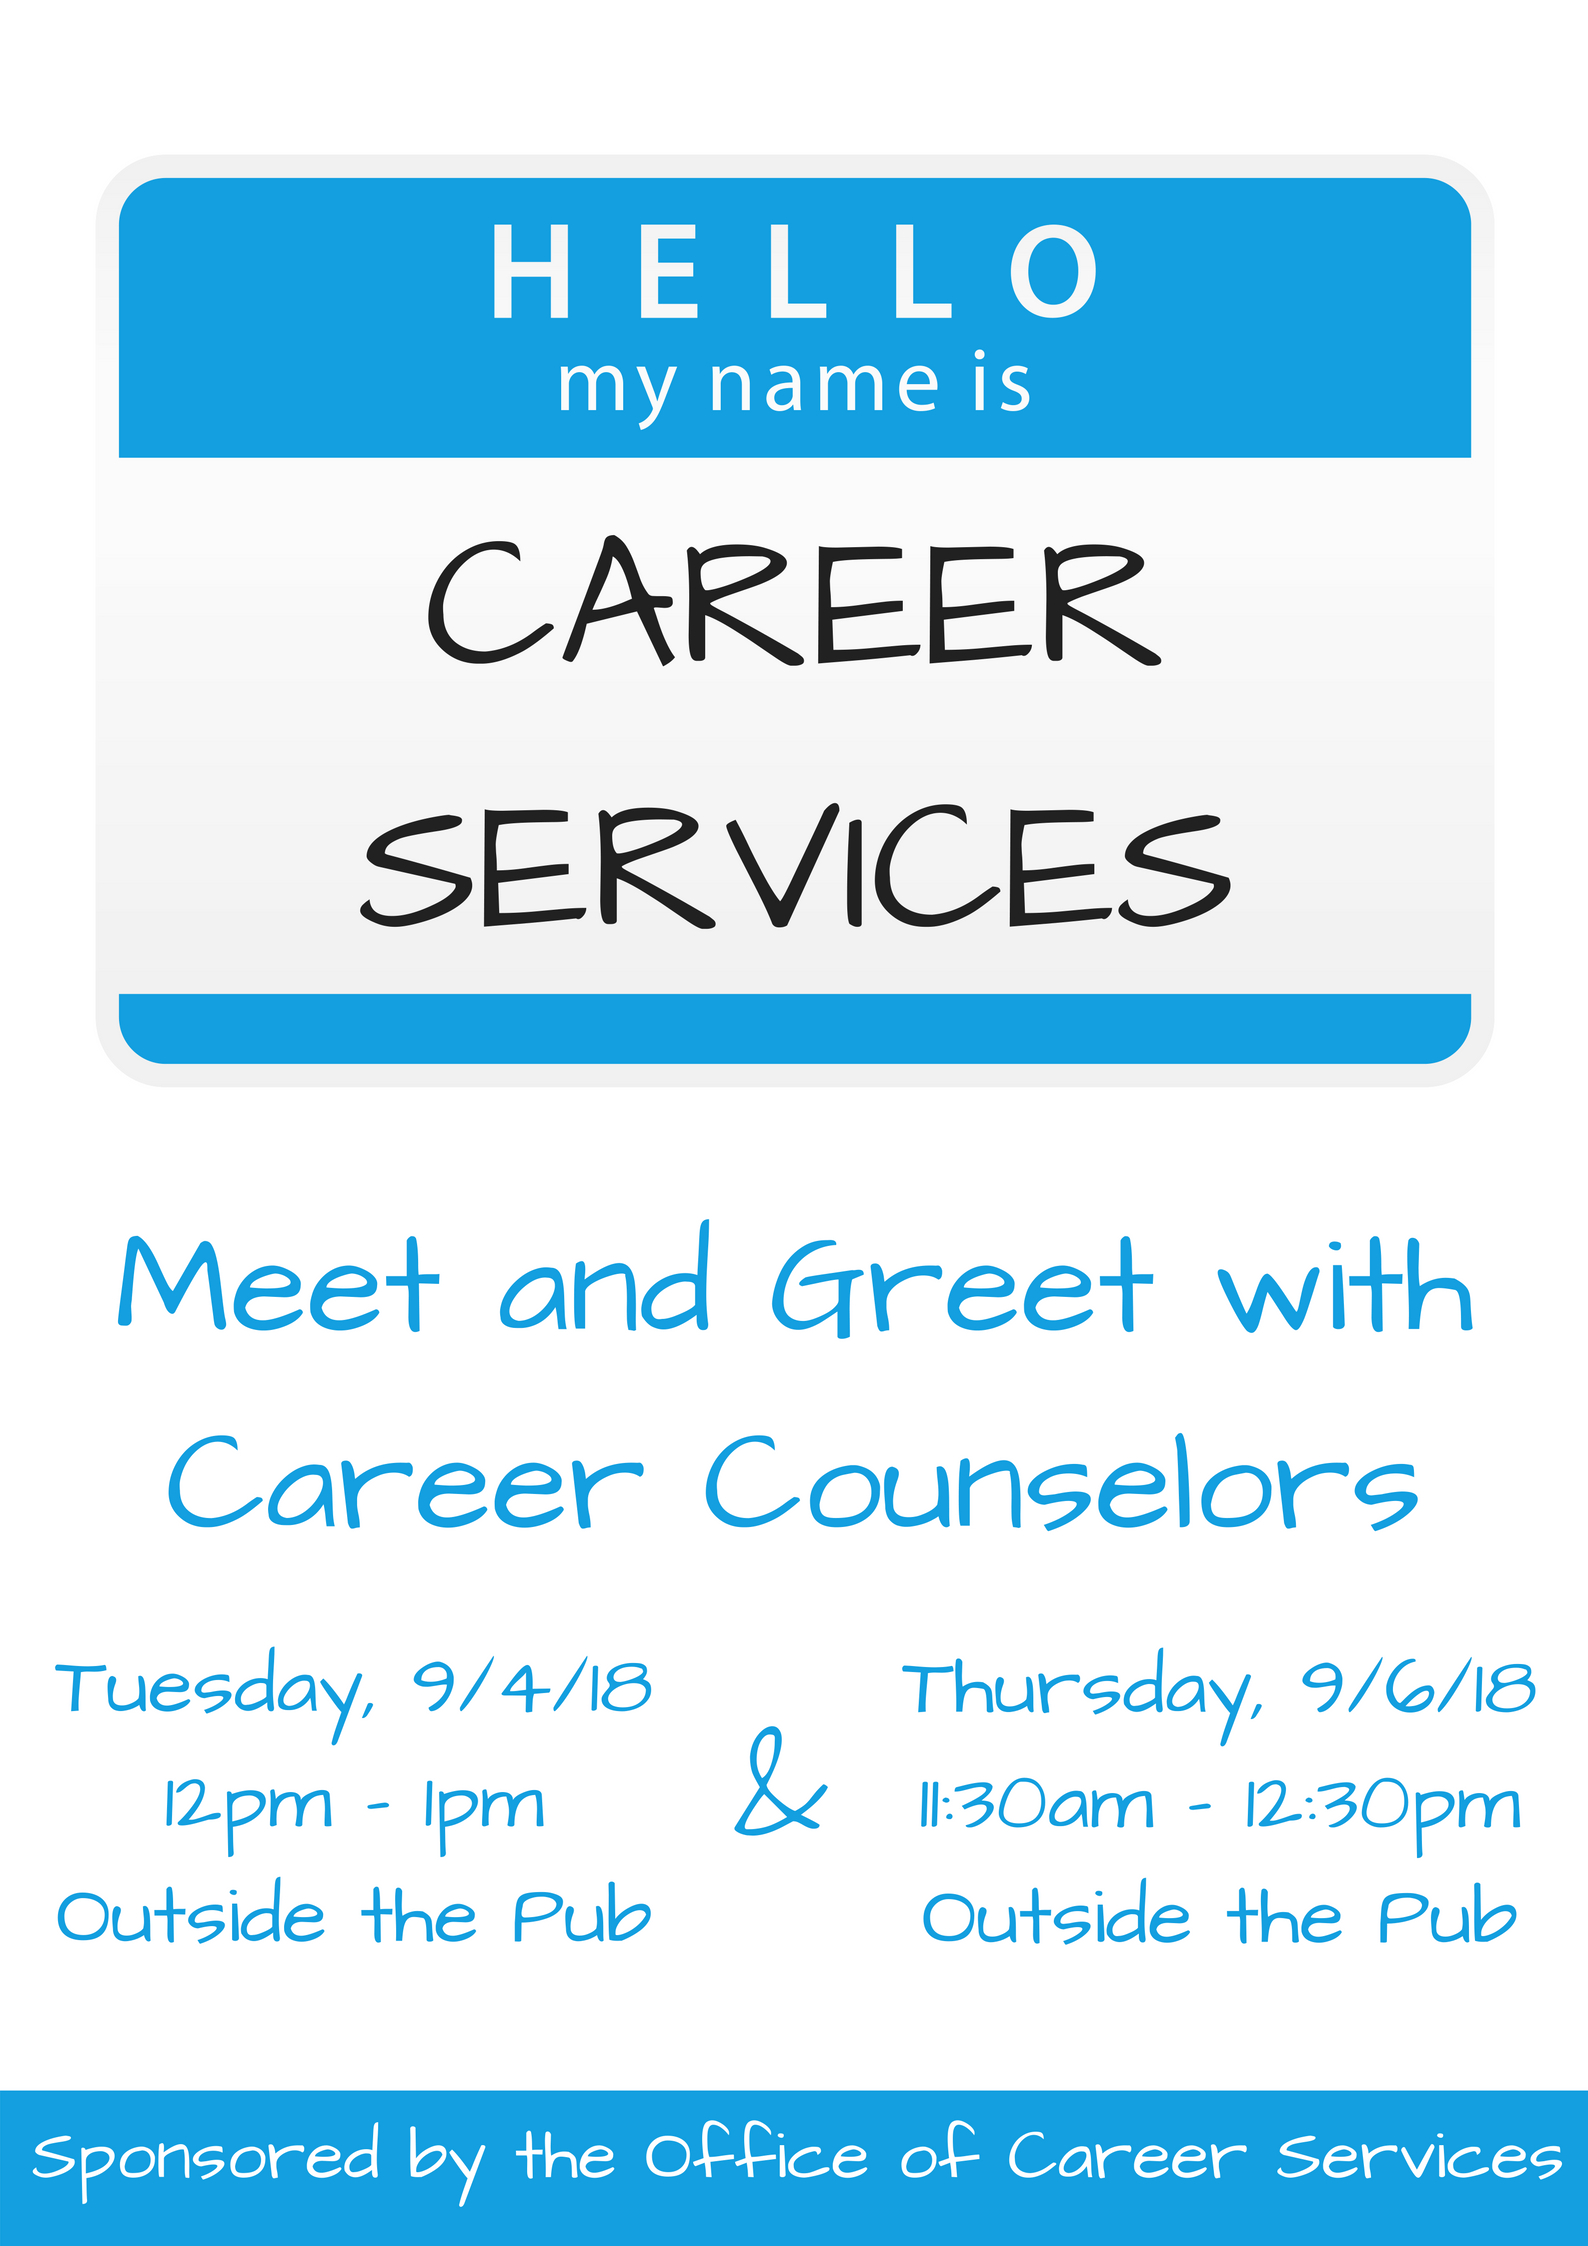 Hello My Name is Career Services